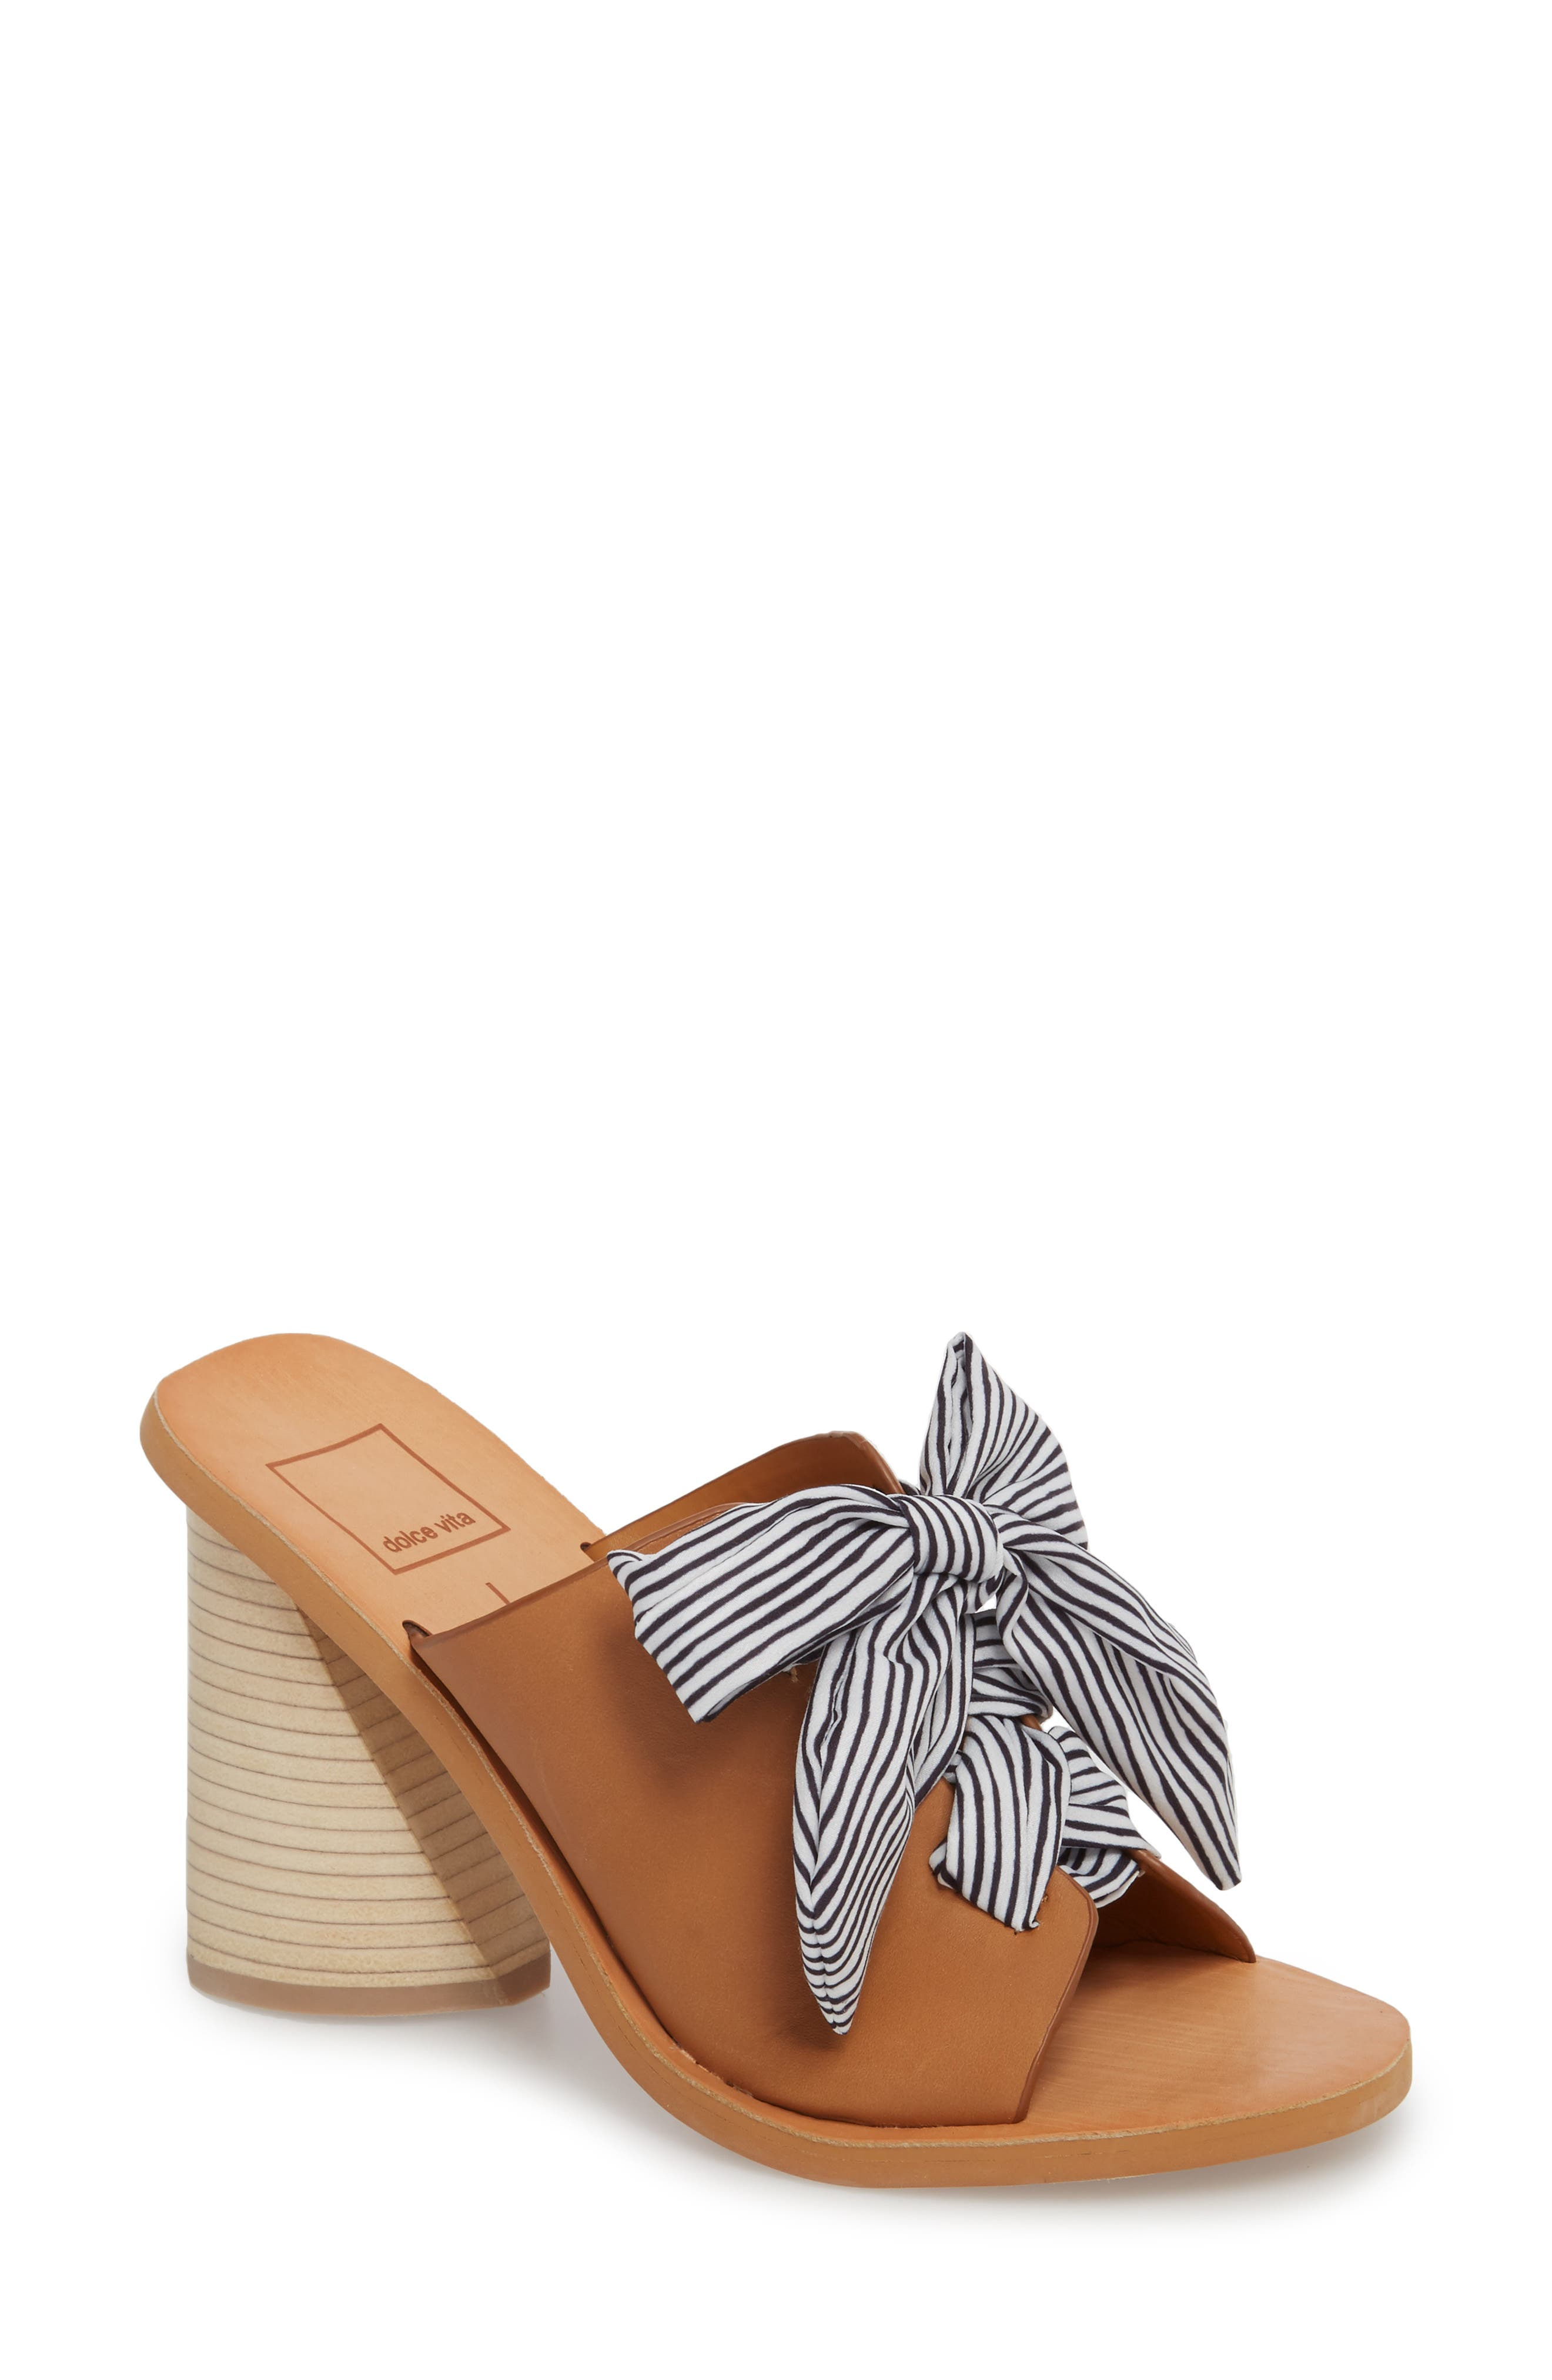 Amber Lace-Up Sandal,                         Main,                         color, Caramel Leather